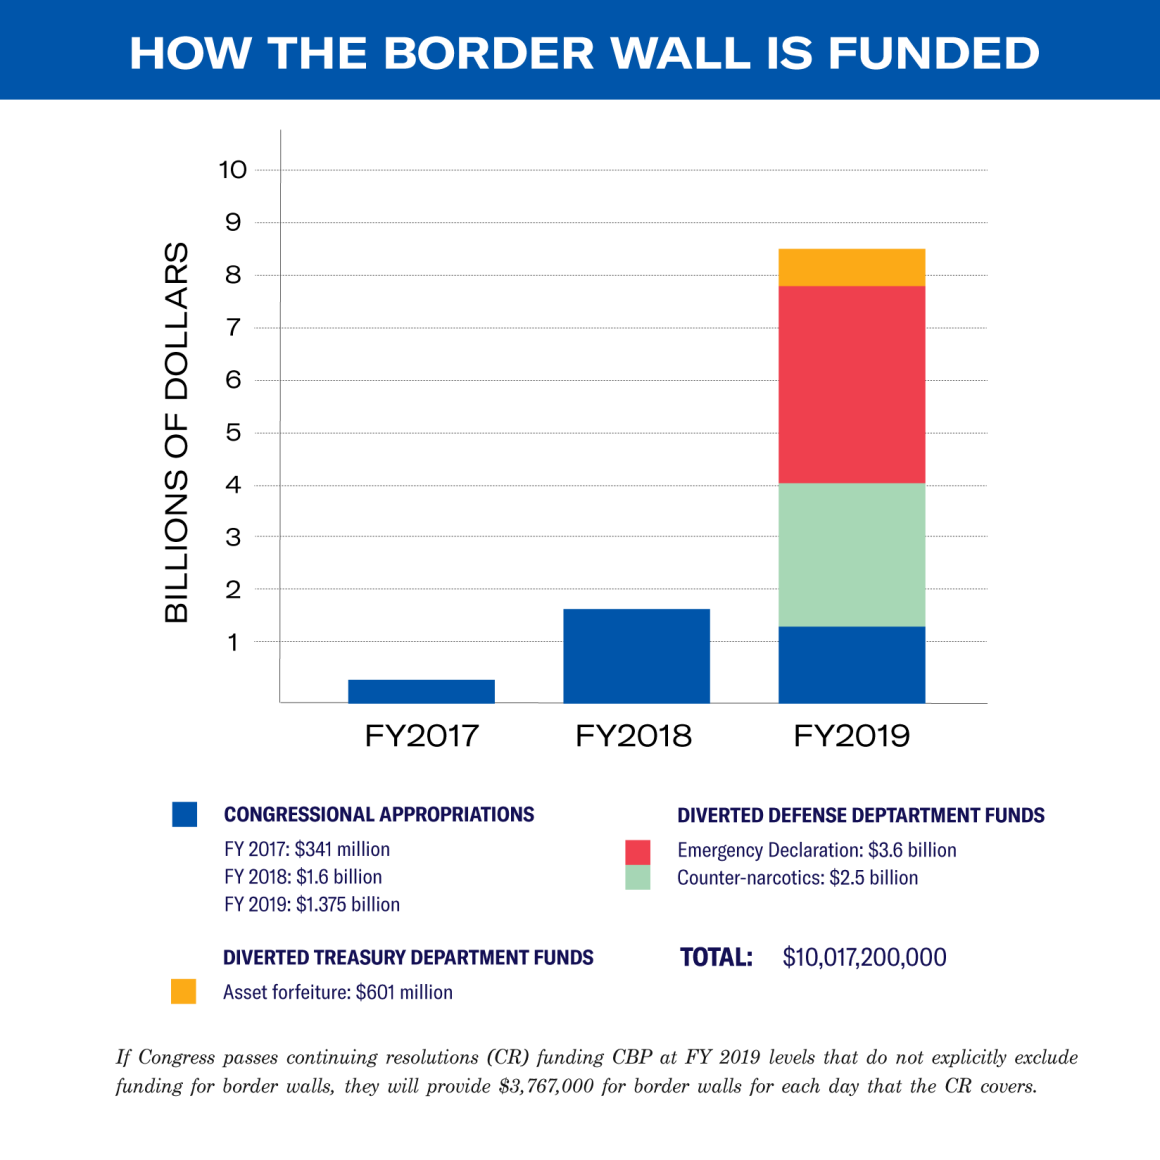 How the border wall gets funded